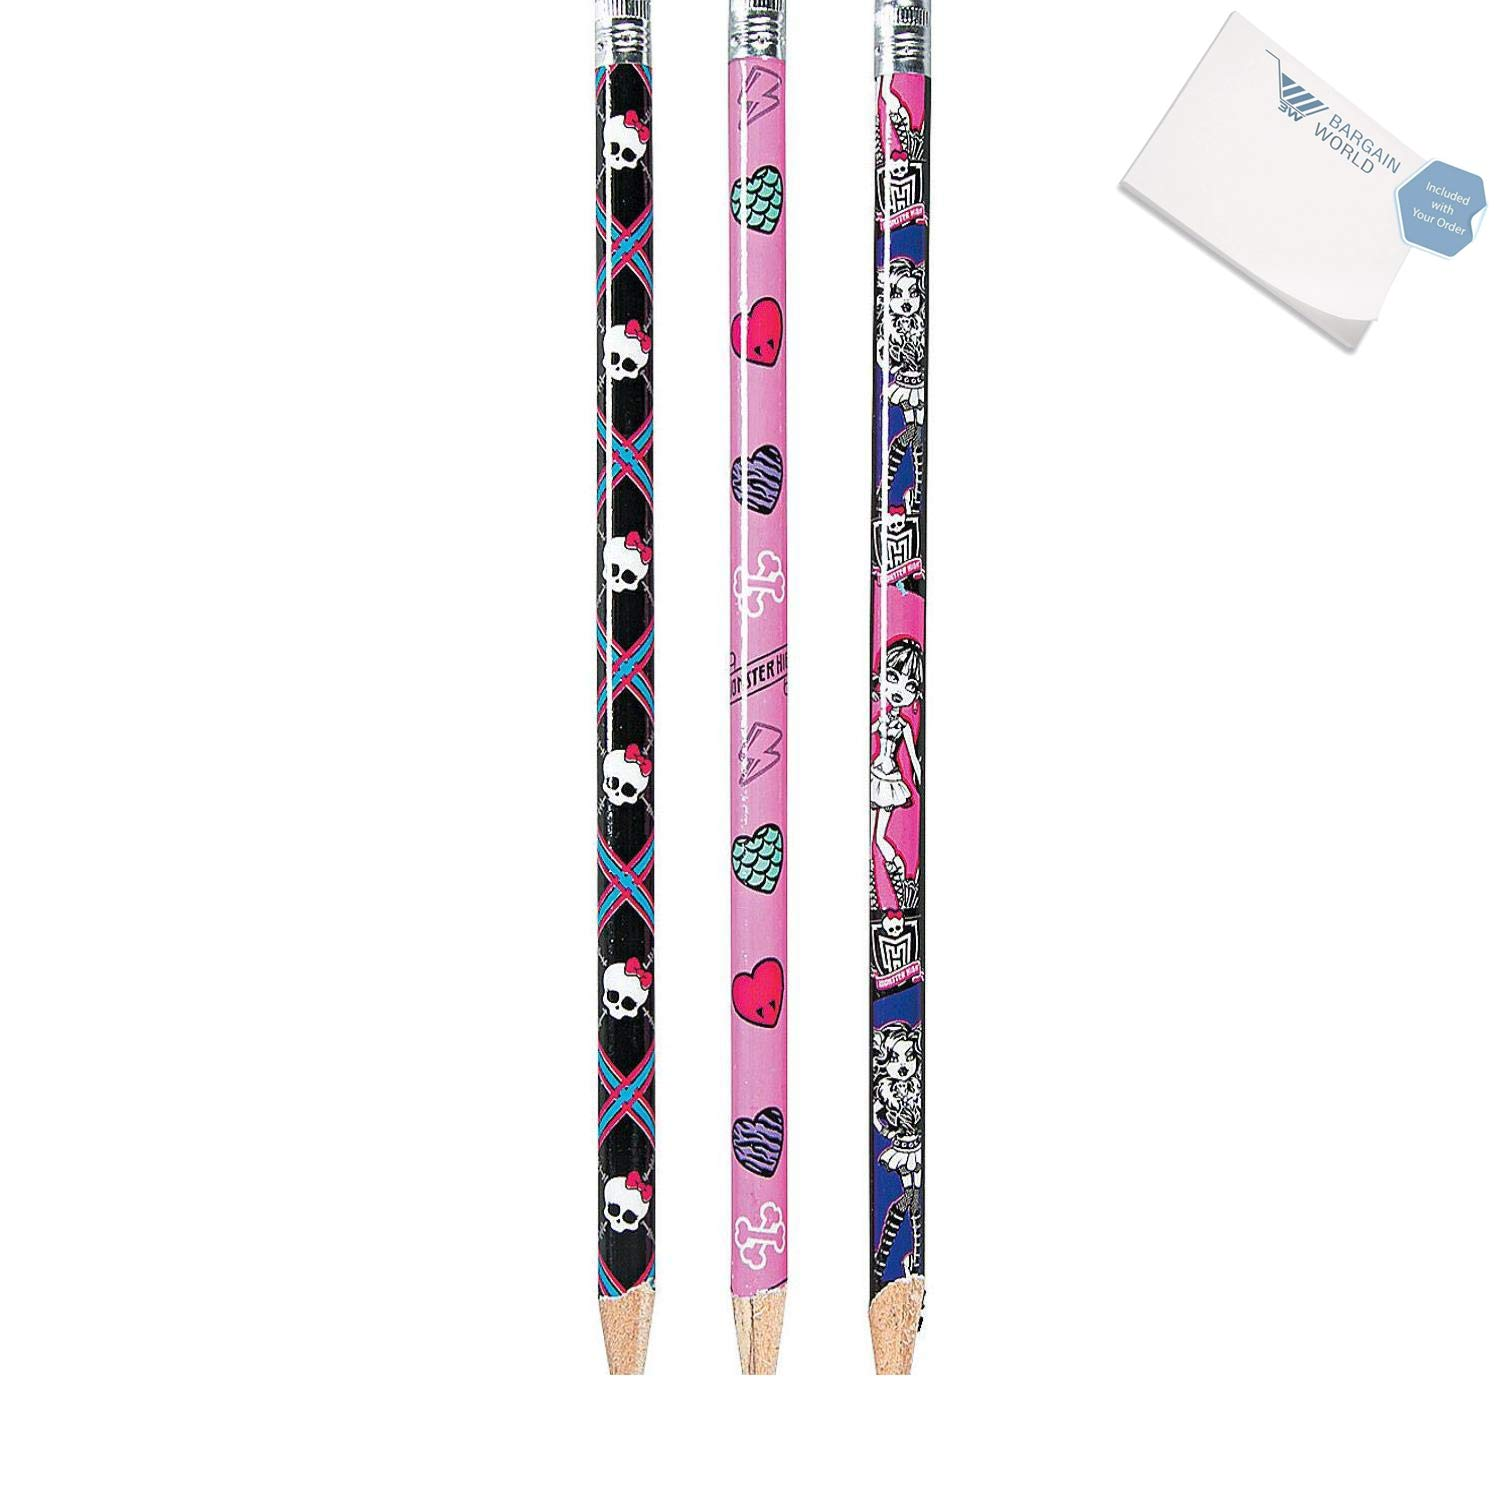 Bargain World Wood Monster High Pencils (With Sticky Notes) by Bargain World (Image #1)